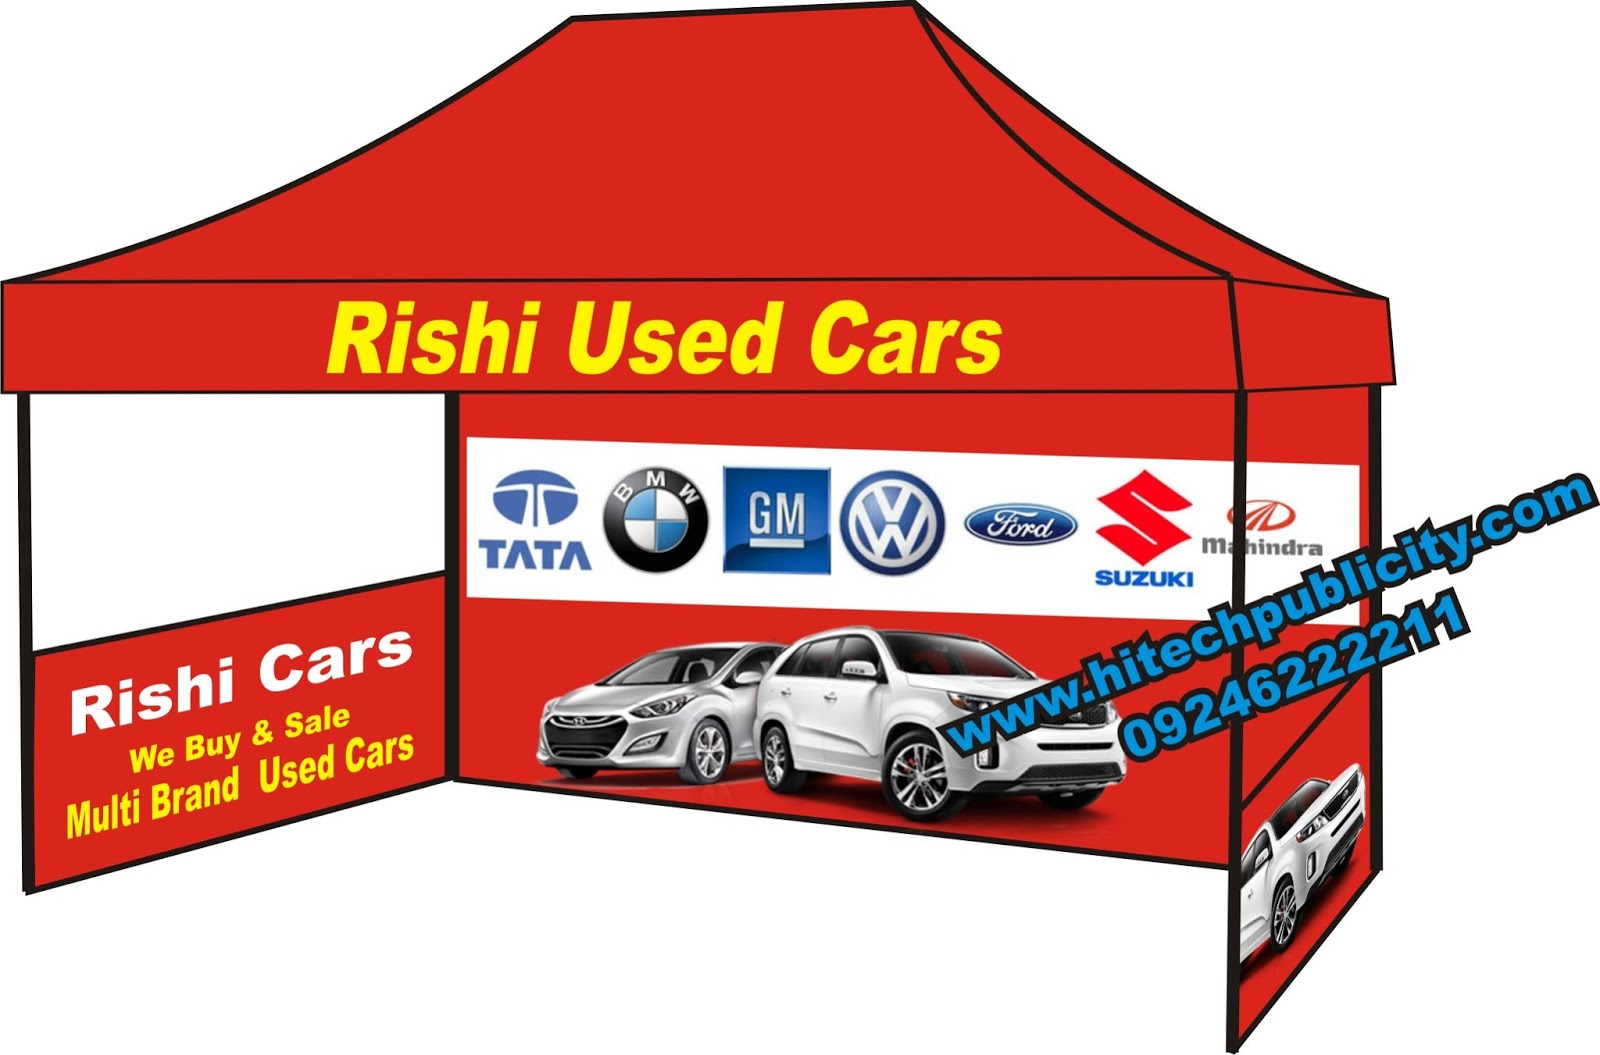 Nissan Dealer Marketing Products For Nissan Dealers Advertising